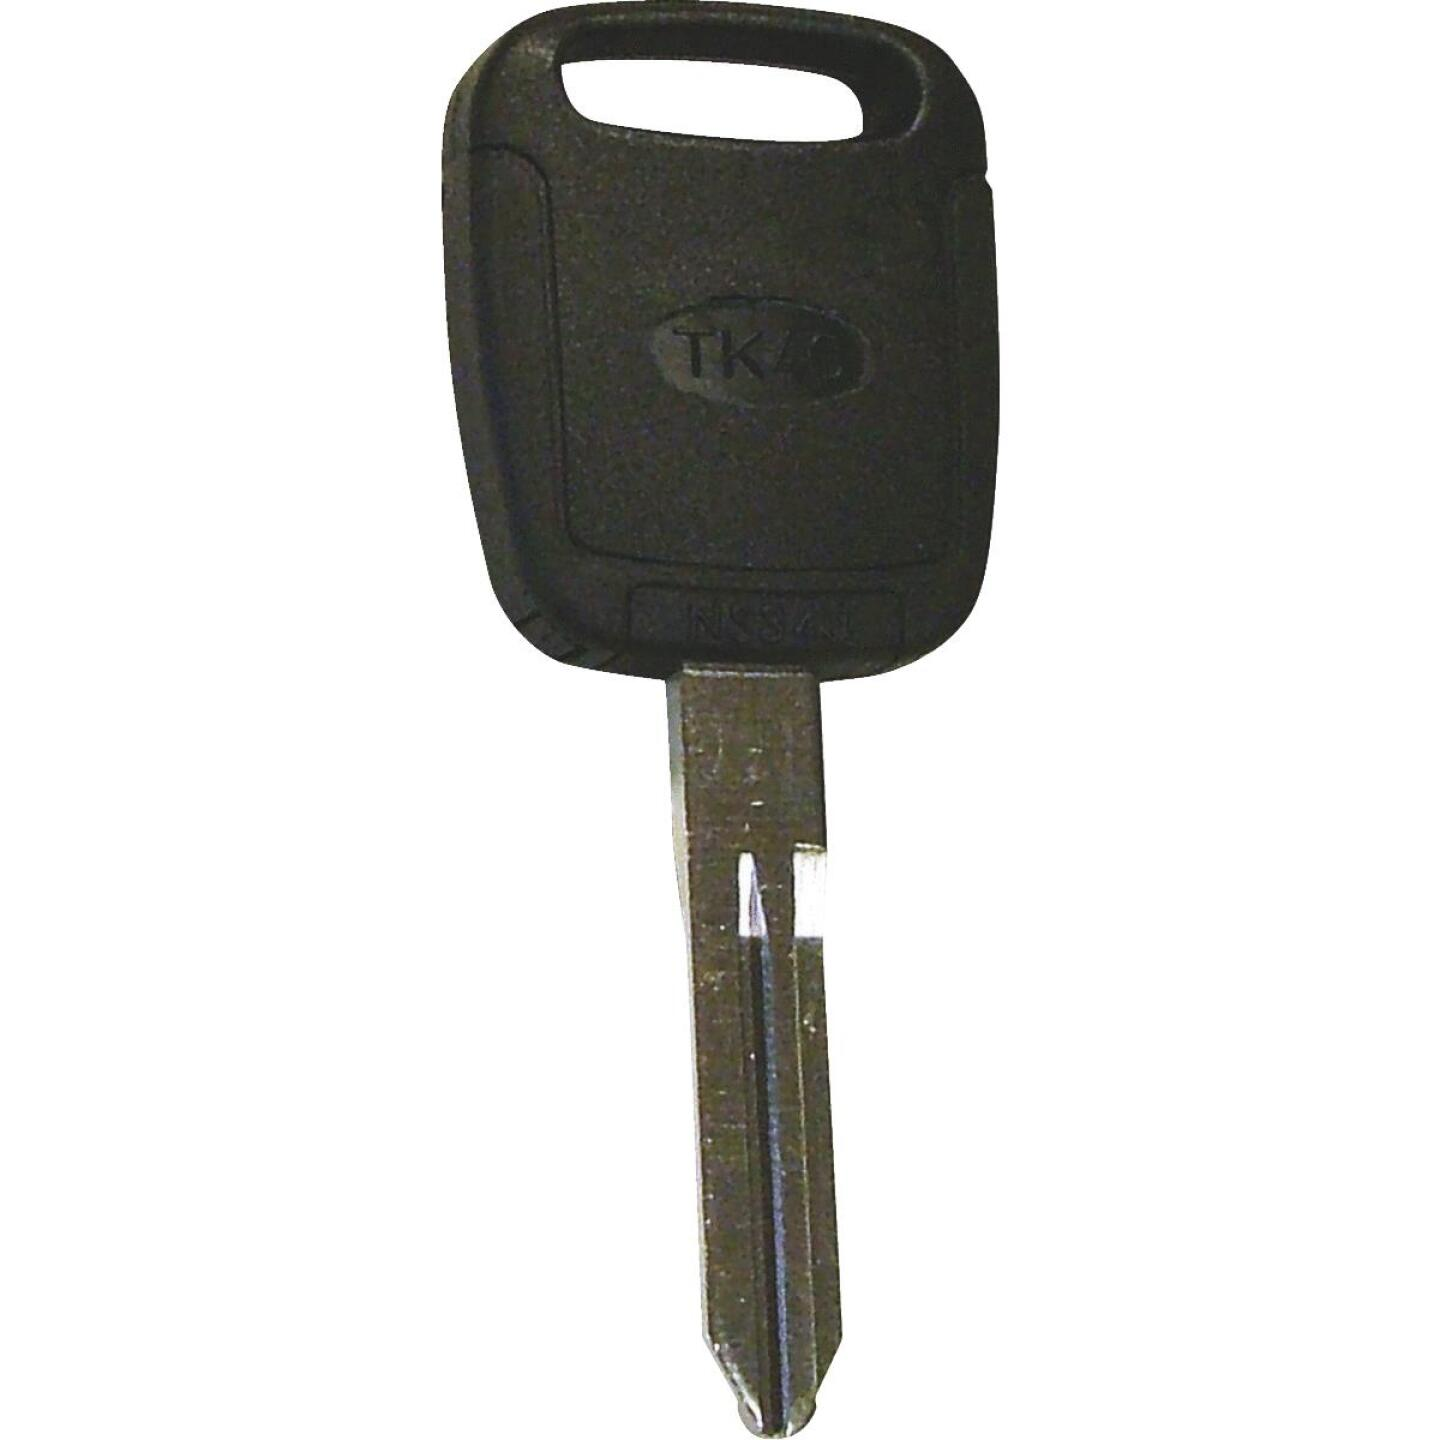 Hy-Ko Nissan Nickel Plated Programmable Chip Key Image 1